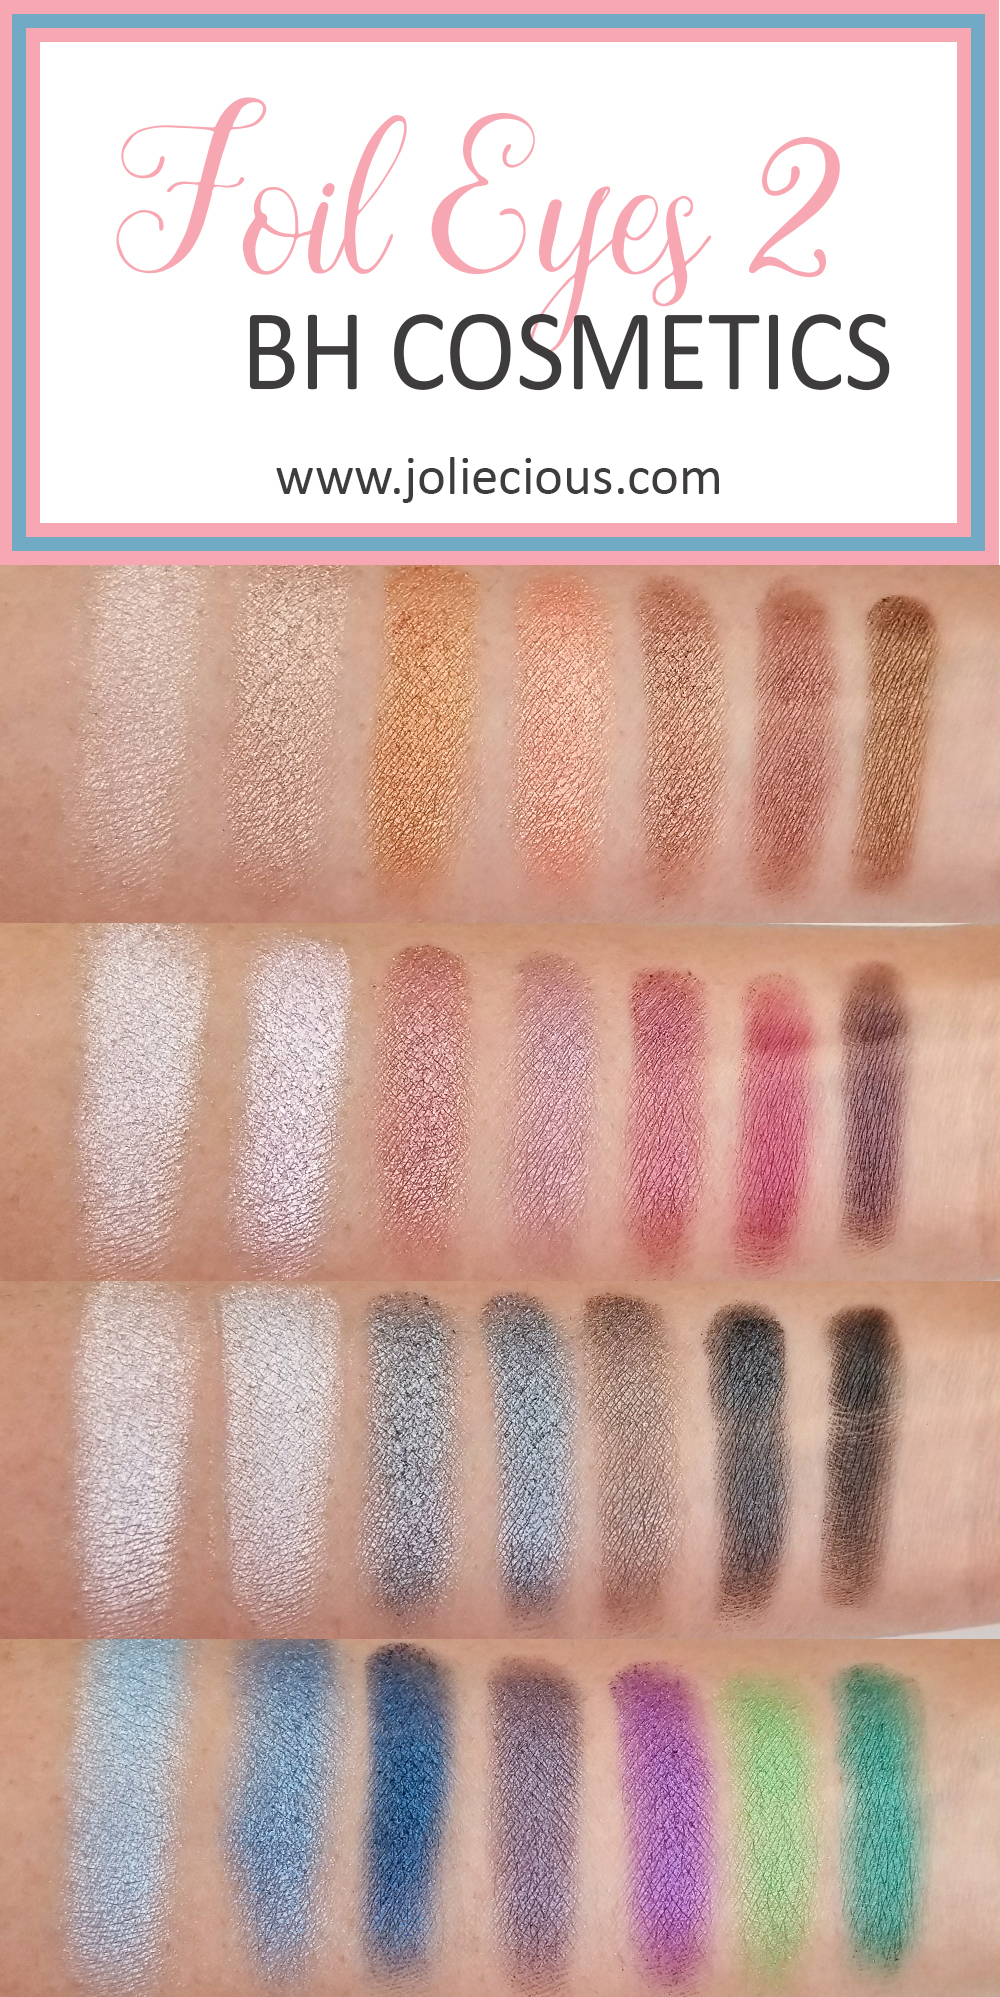 BH Cosmetics Foil Eyes 2 Swatches